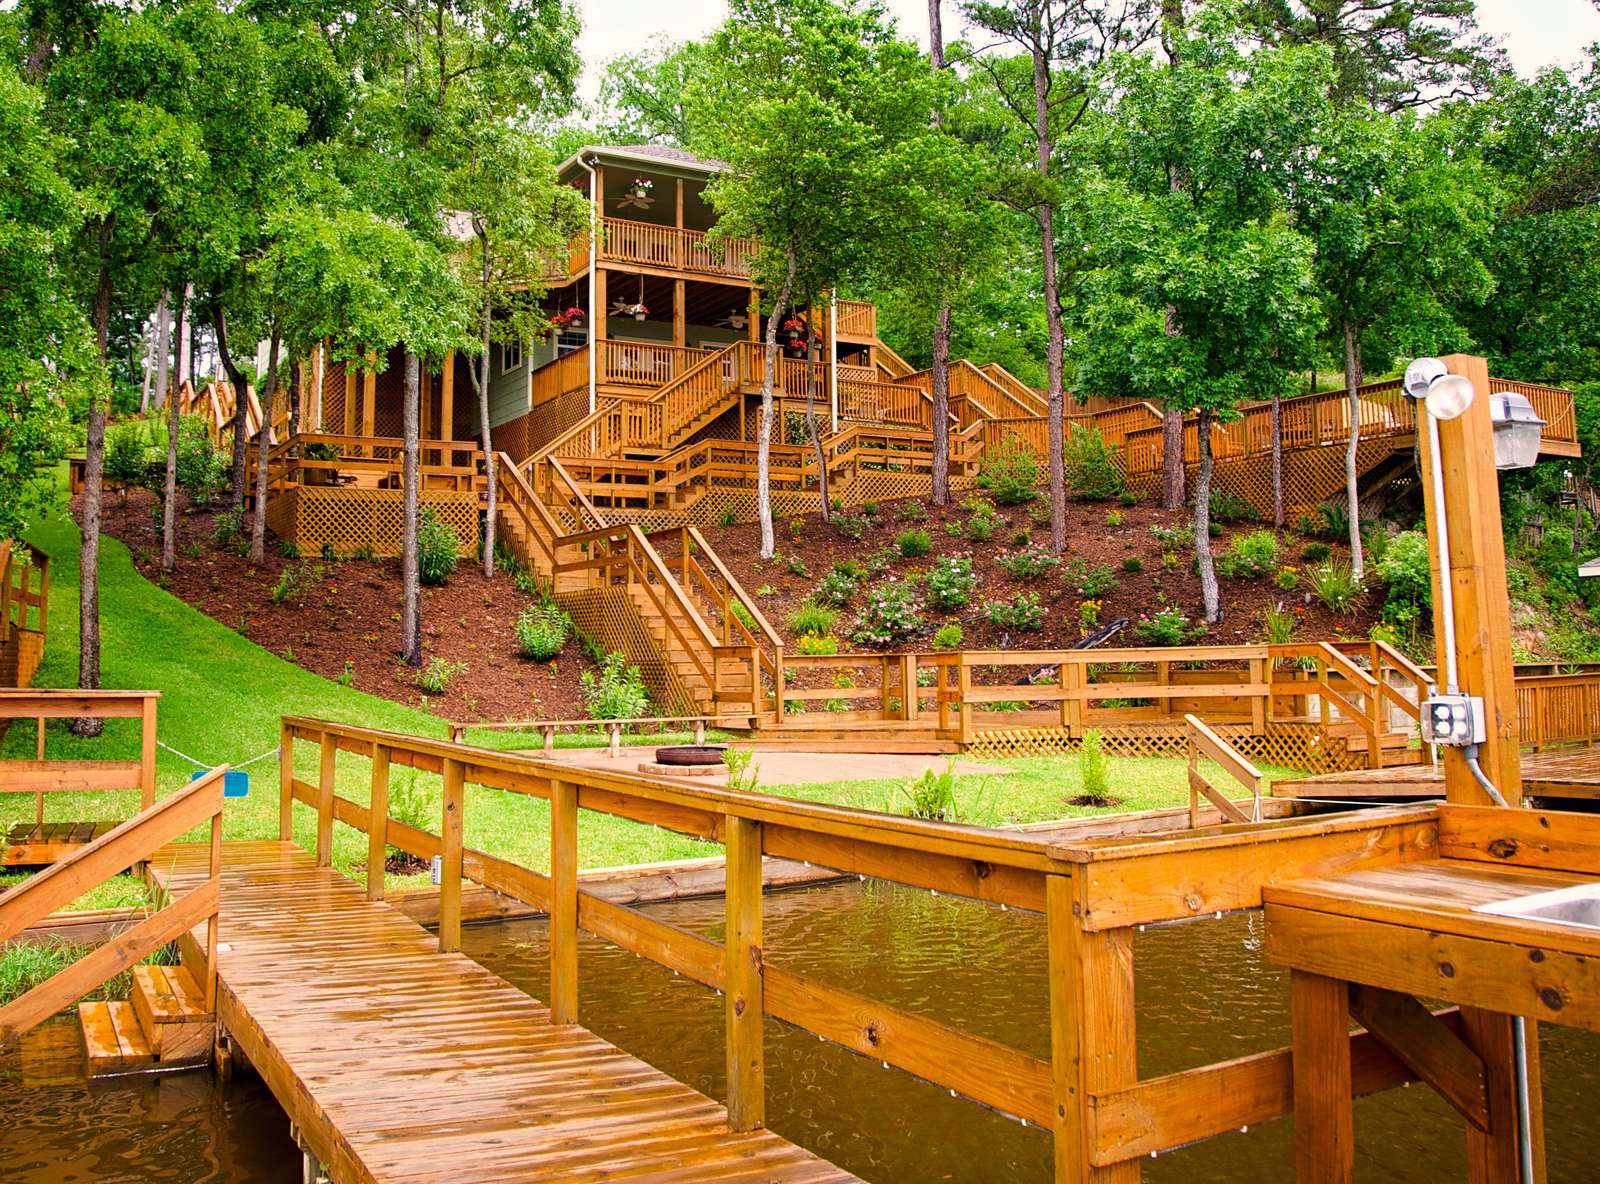 Pats has an incredible amount of decking and landscaping. The decks light at night and present the guests with an awesome show.